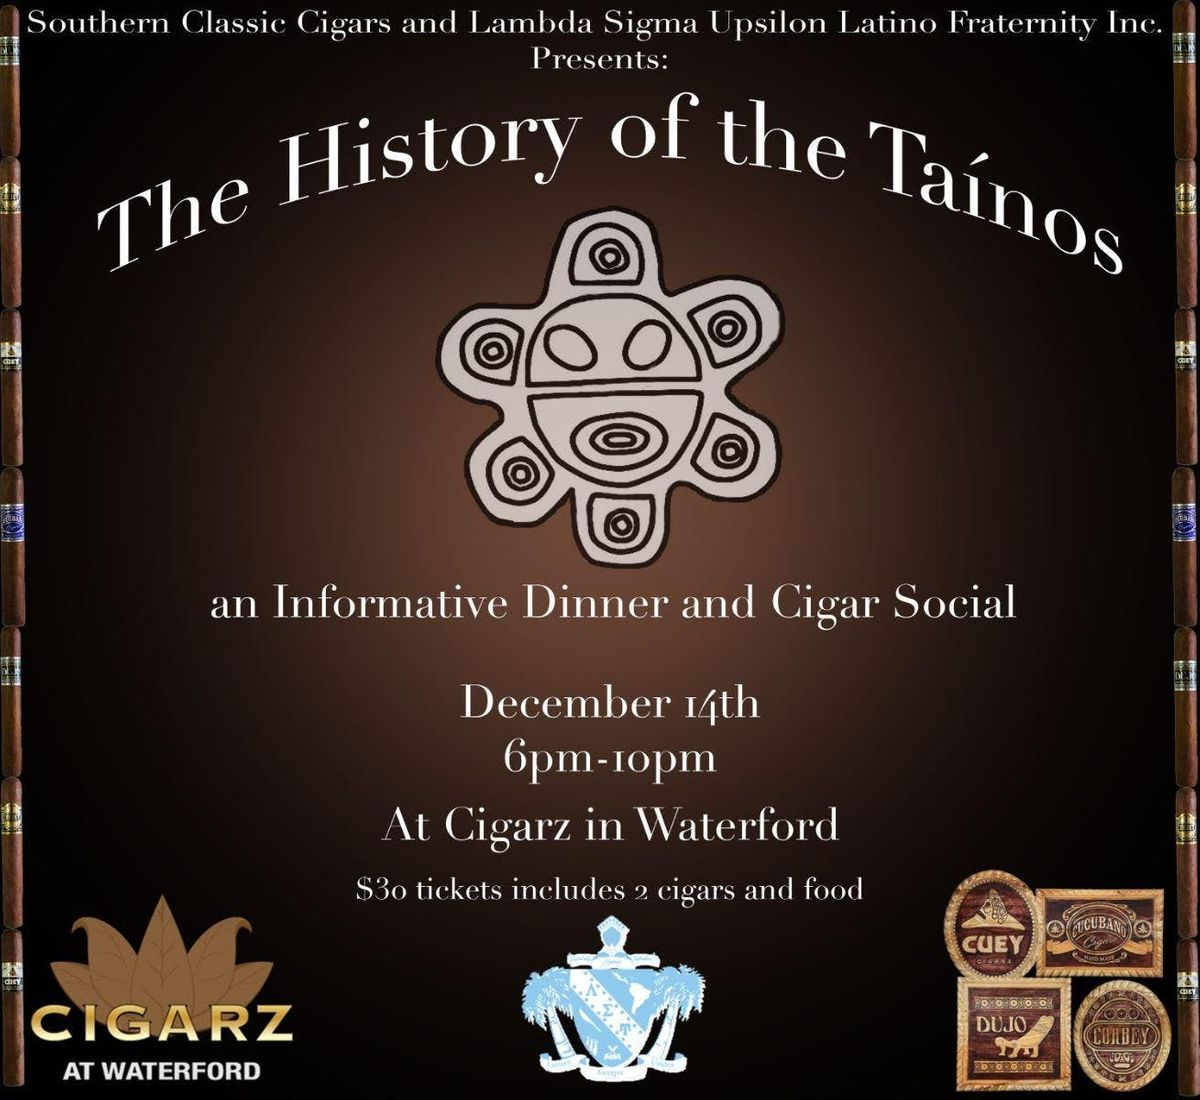 An evening of Taino Culture exploration with Southern Classic Cigars and Lambda Sigma Upsilon Latino Fraternity Inc